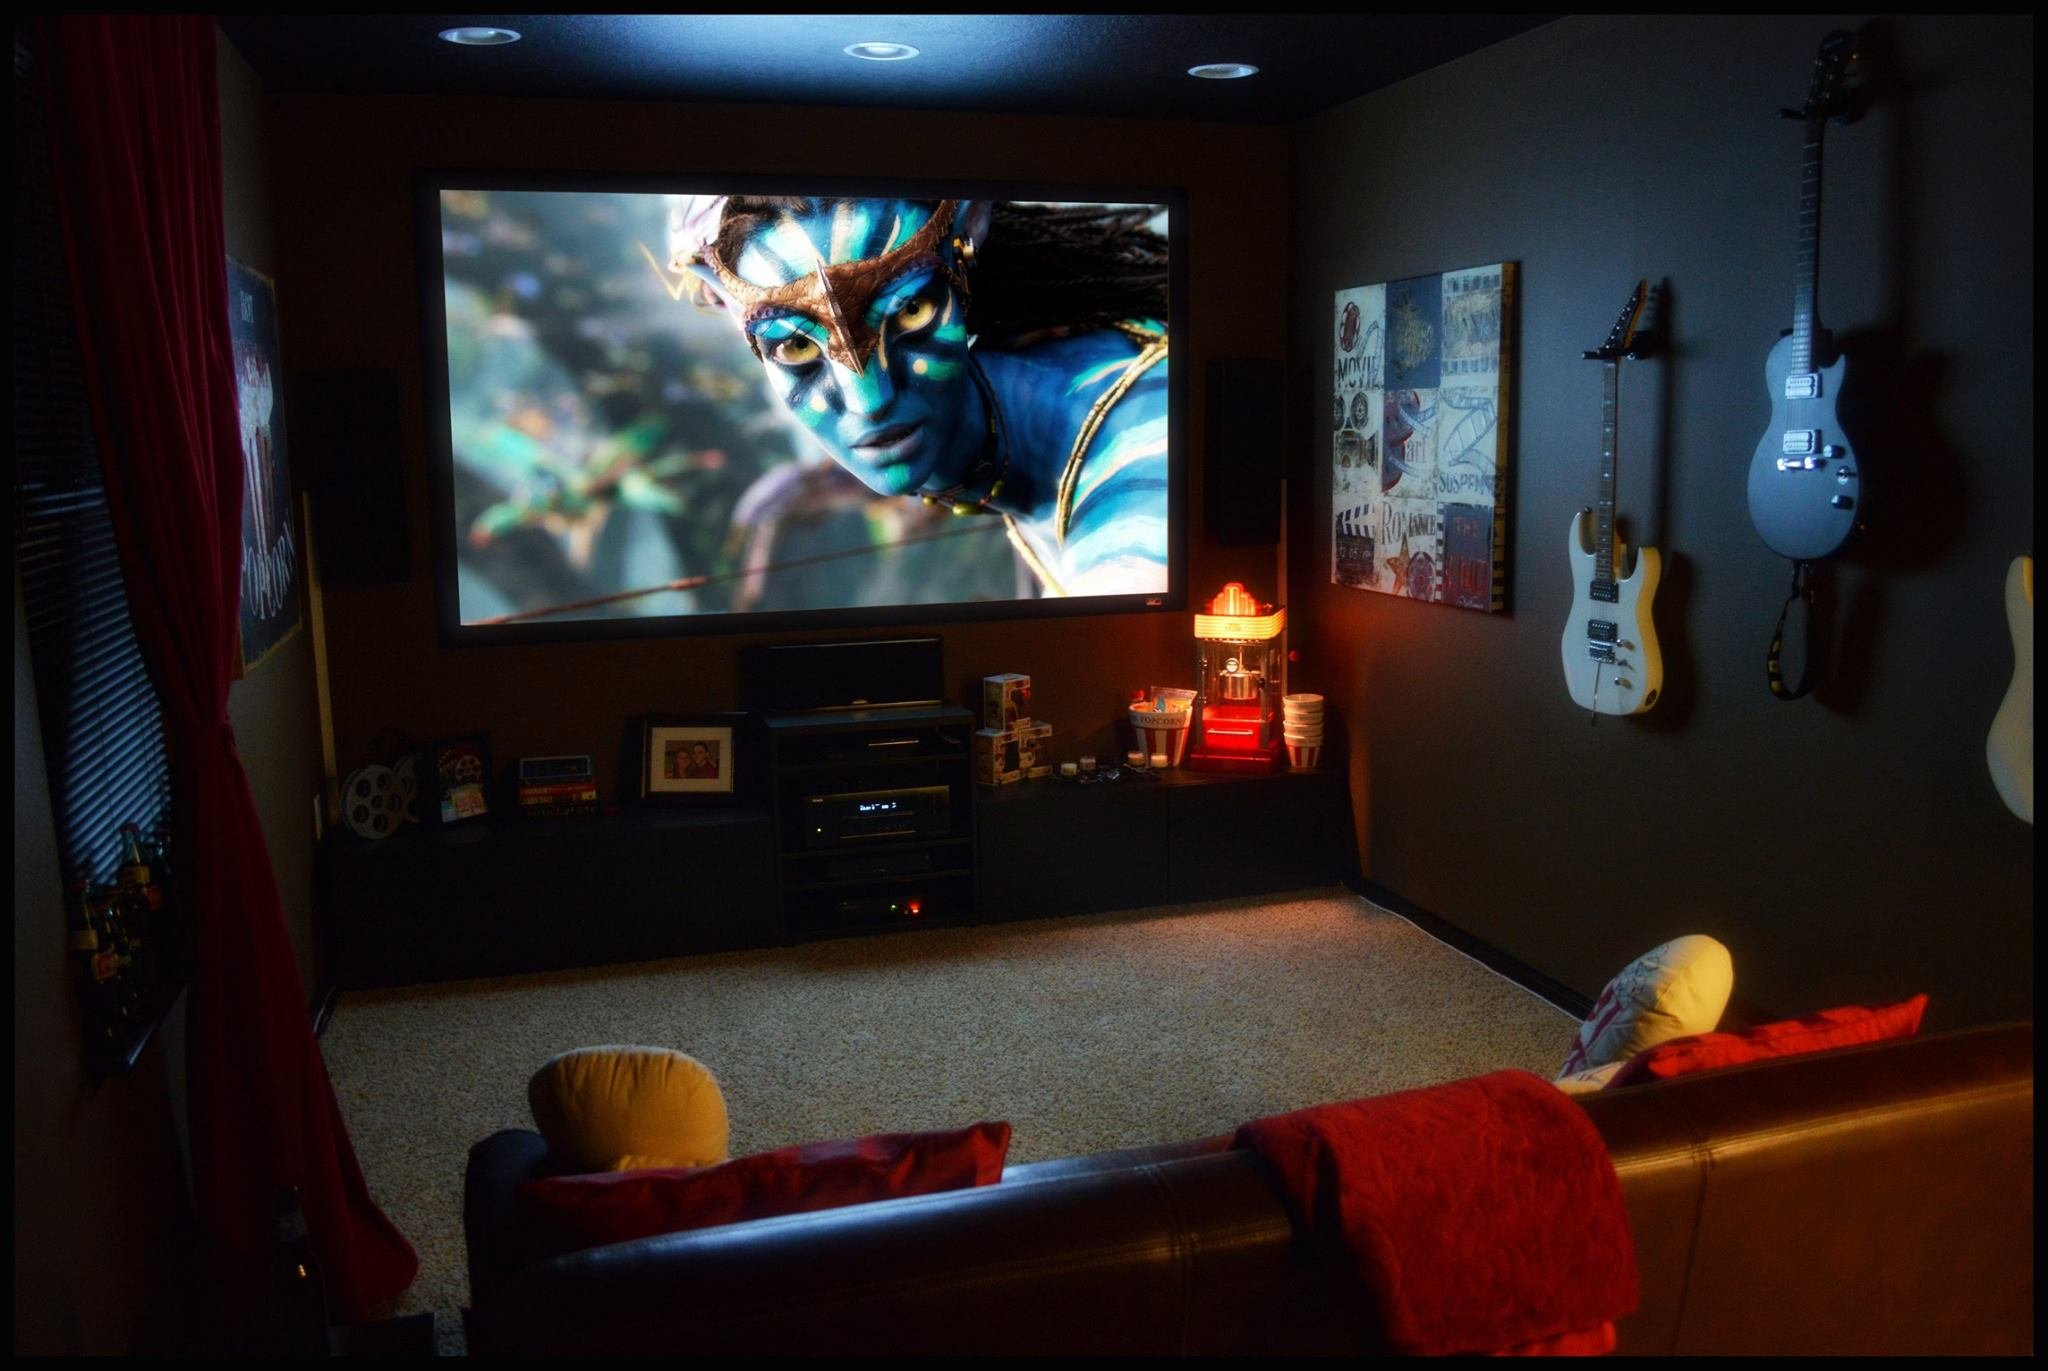 How To Make Your Own Home Theater Room